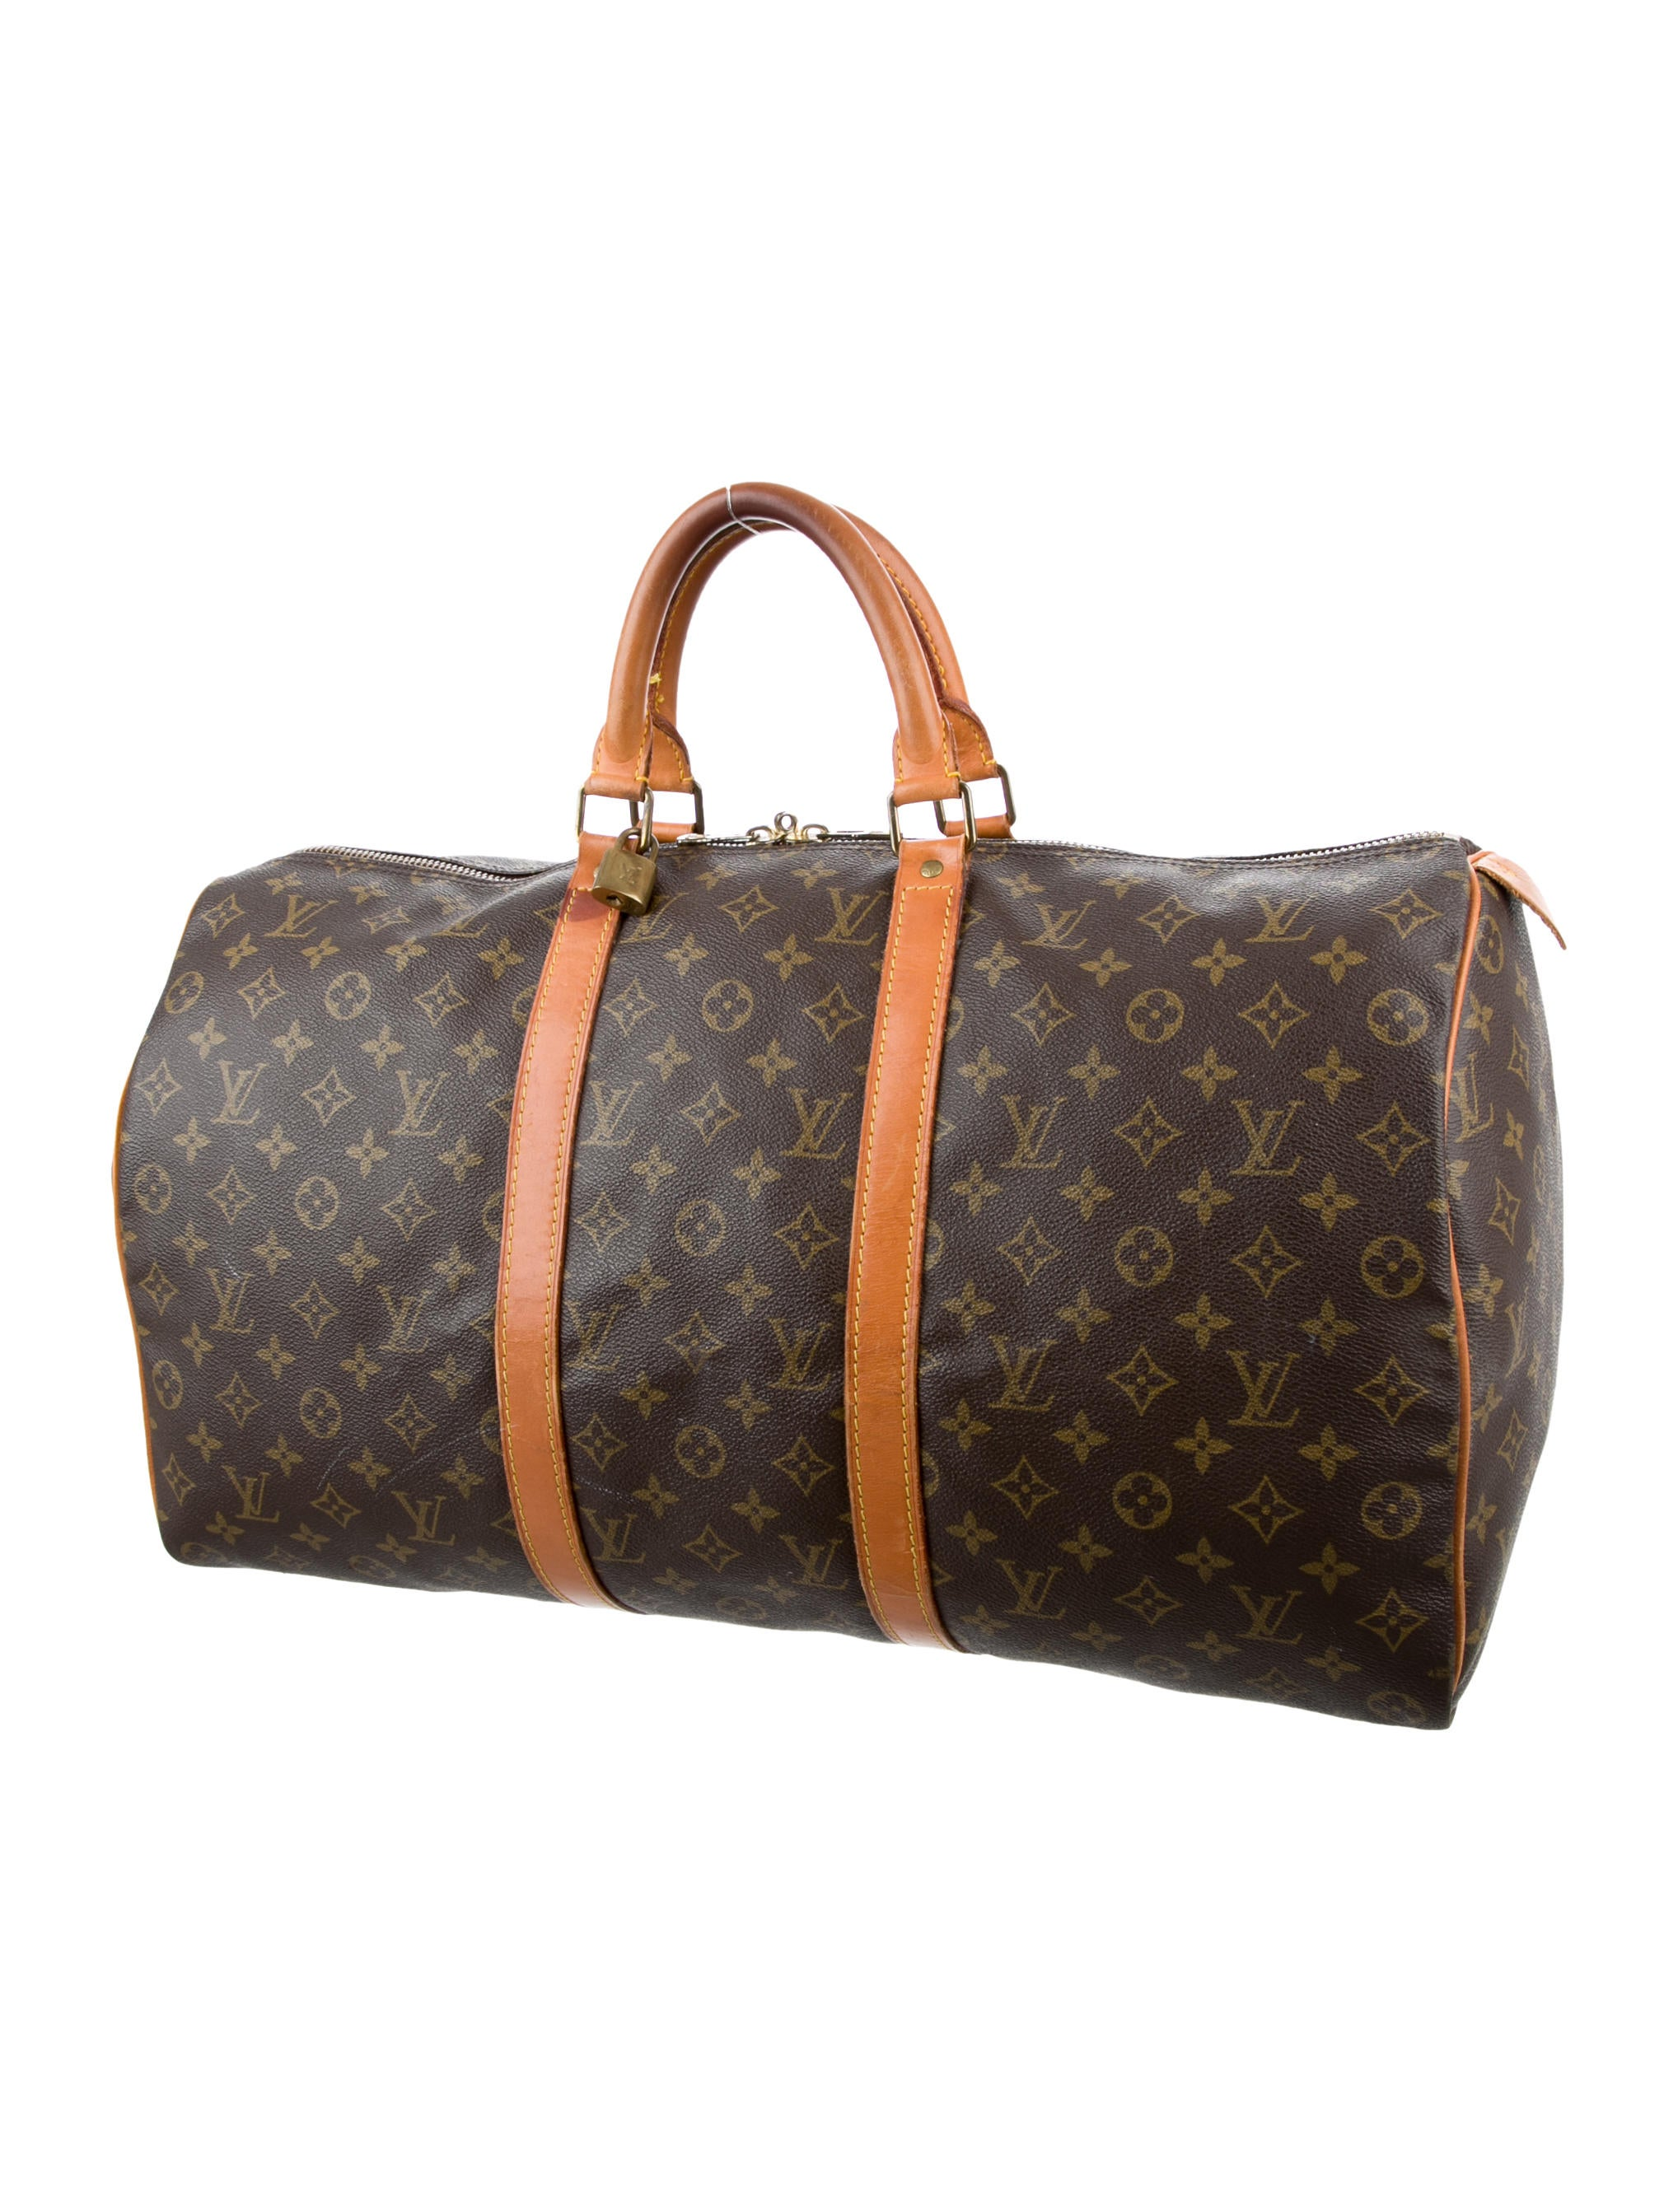 louis vuitton monogram keepall 50 handbags lou117200. Black Bedroom Furniture Sets. Home Design Ideas